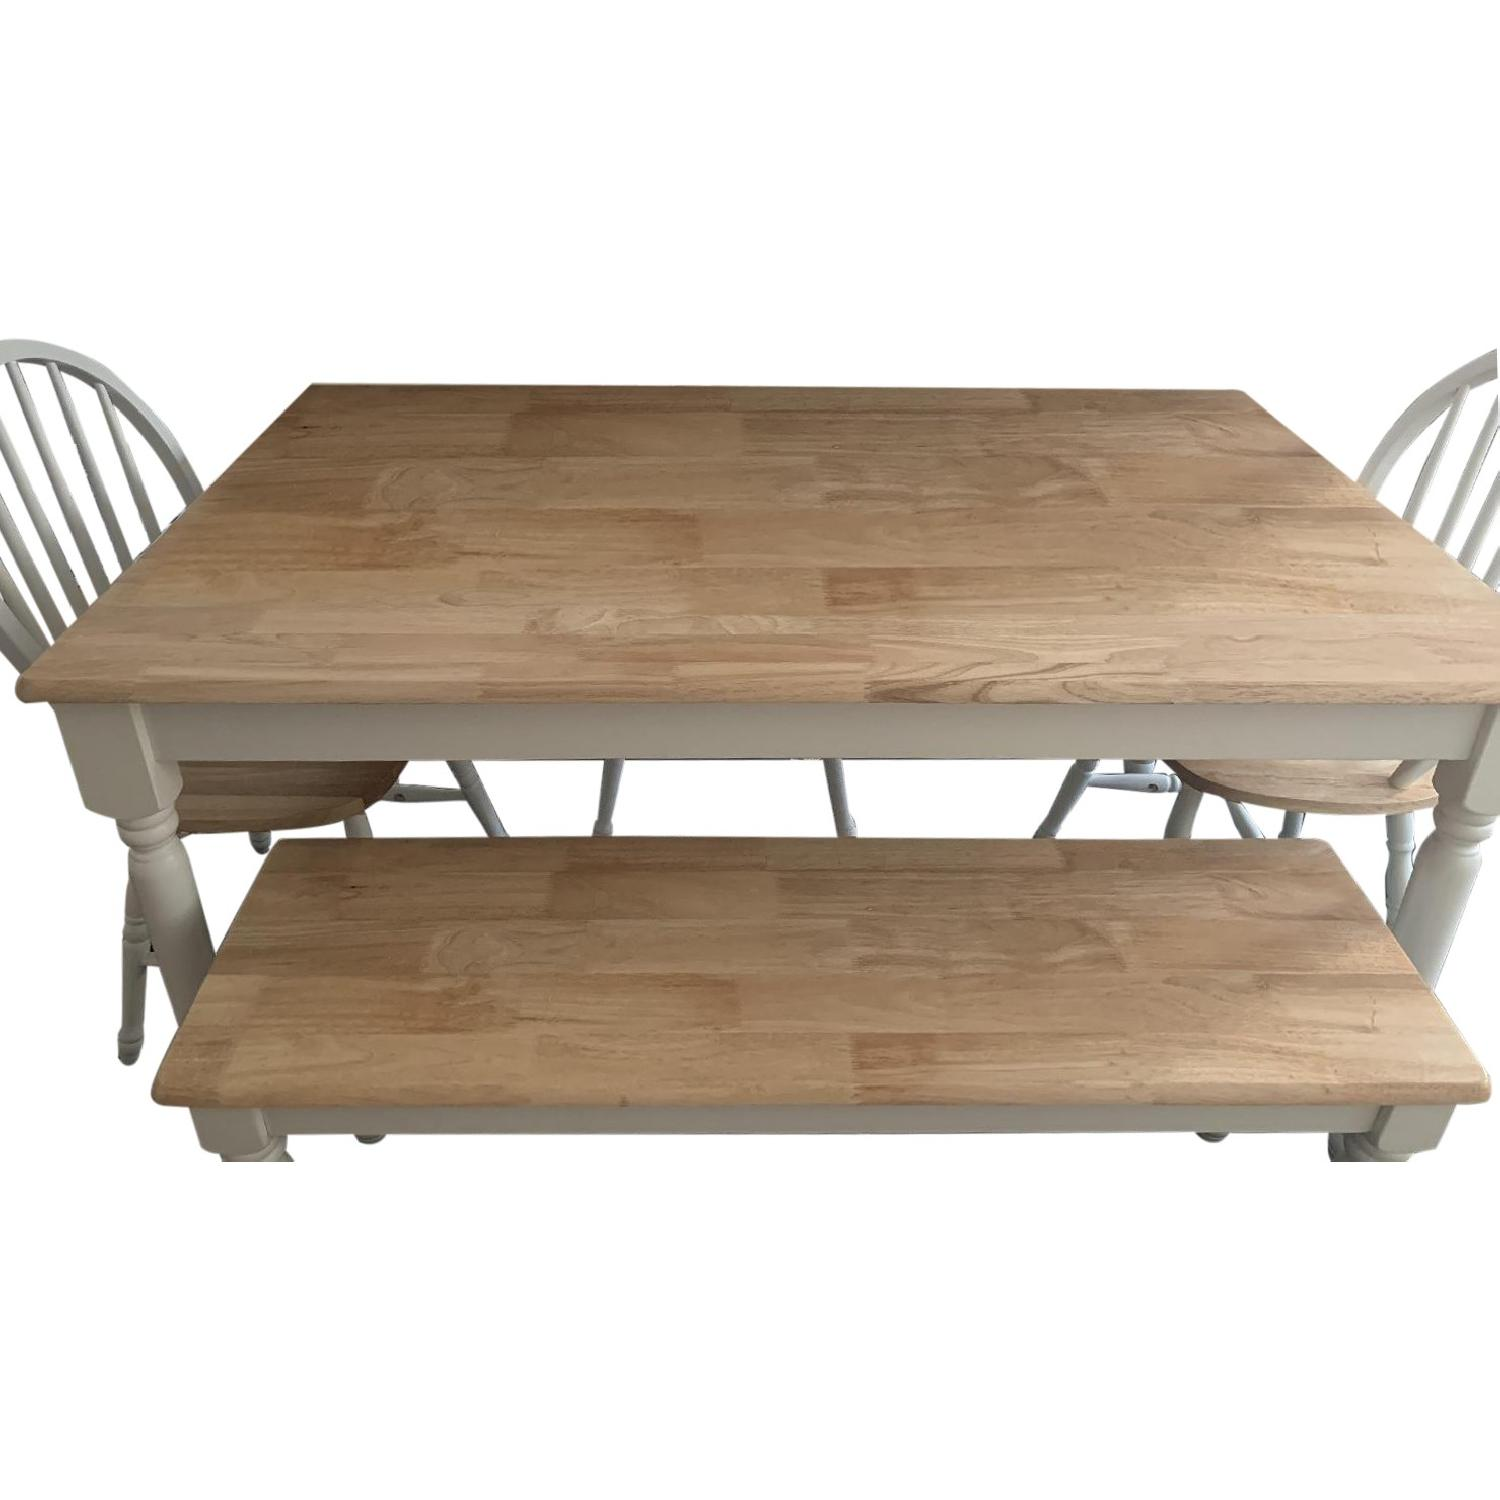 Better Homes & Gardens Dining Table w/ 1 Bench & 3 Chairs - image-0